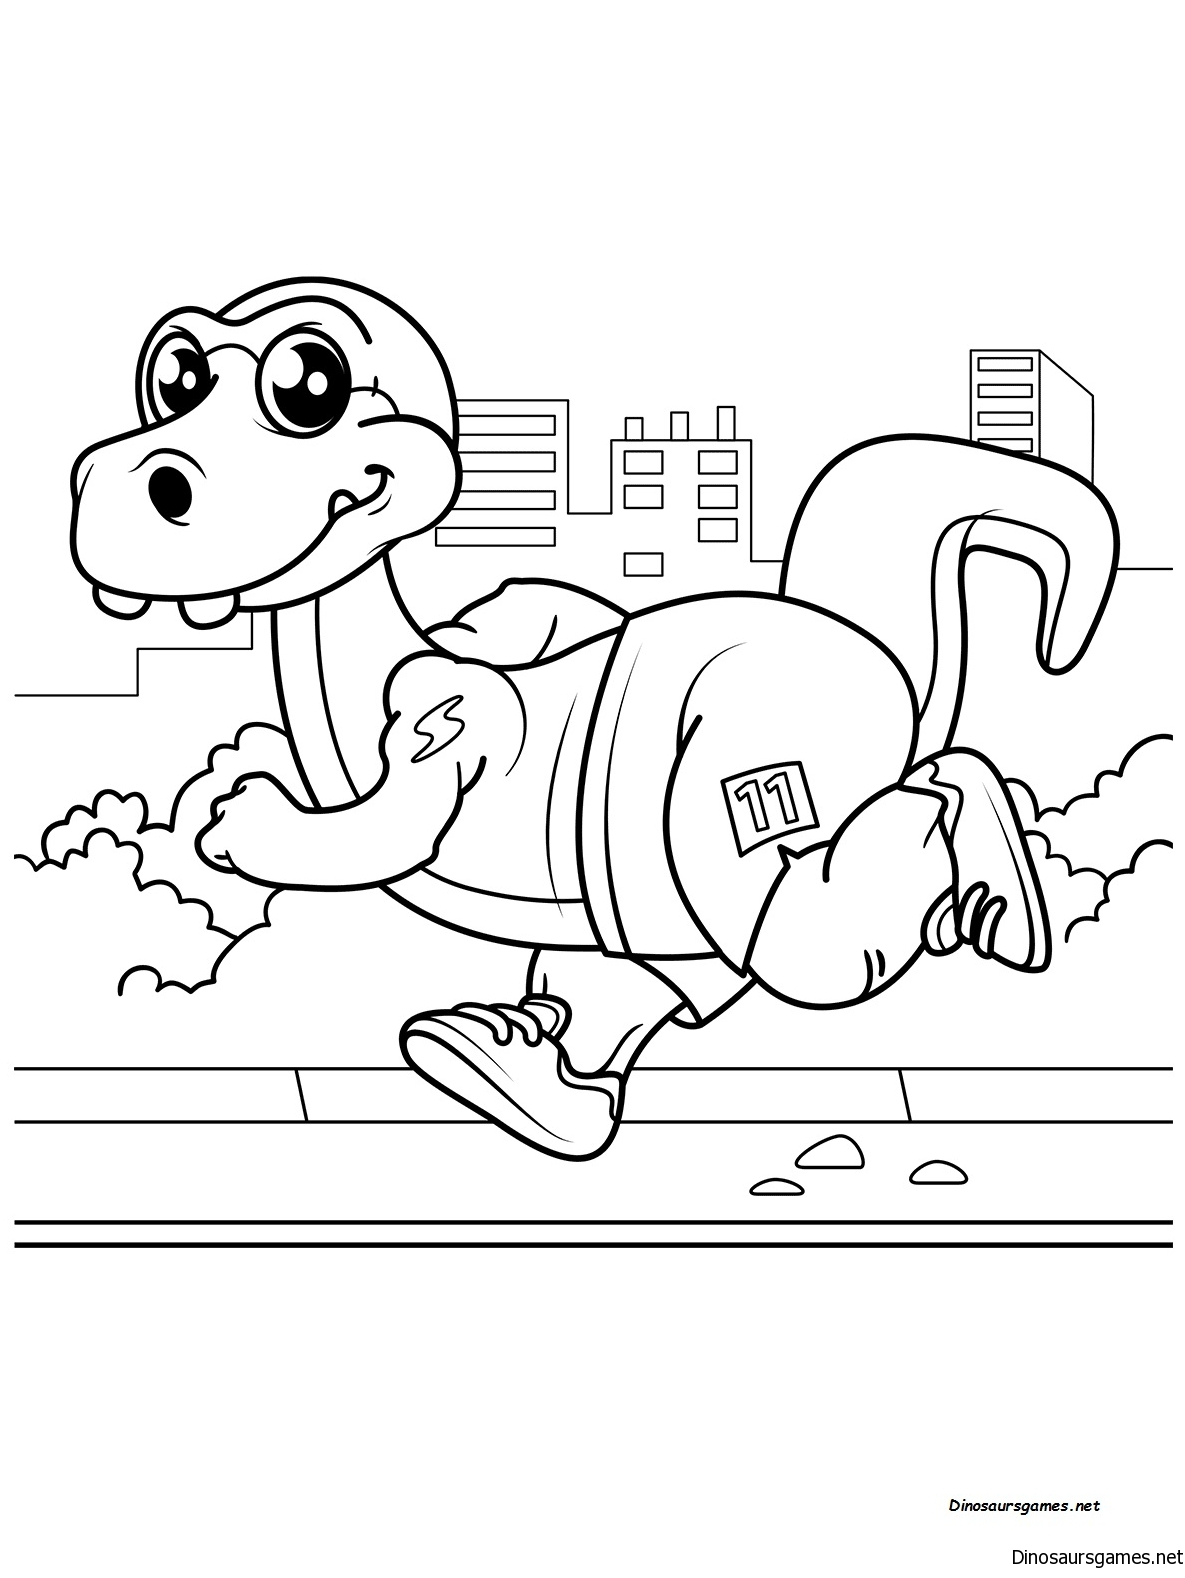 Cute Dinosaur Runner Coloring Page